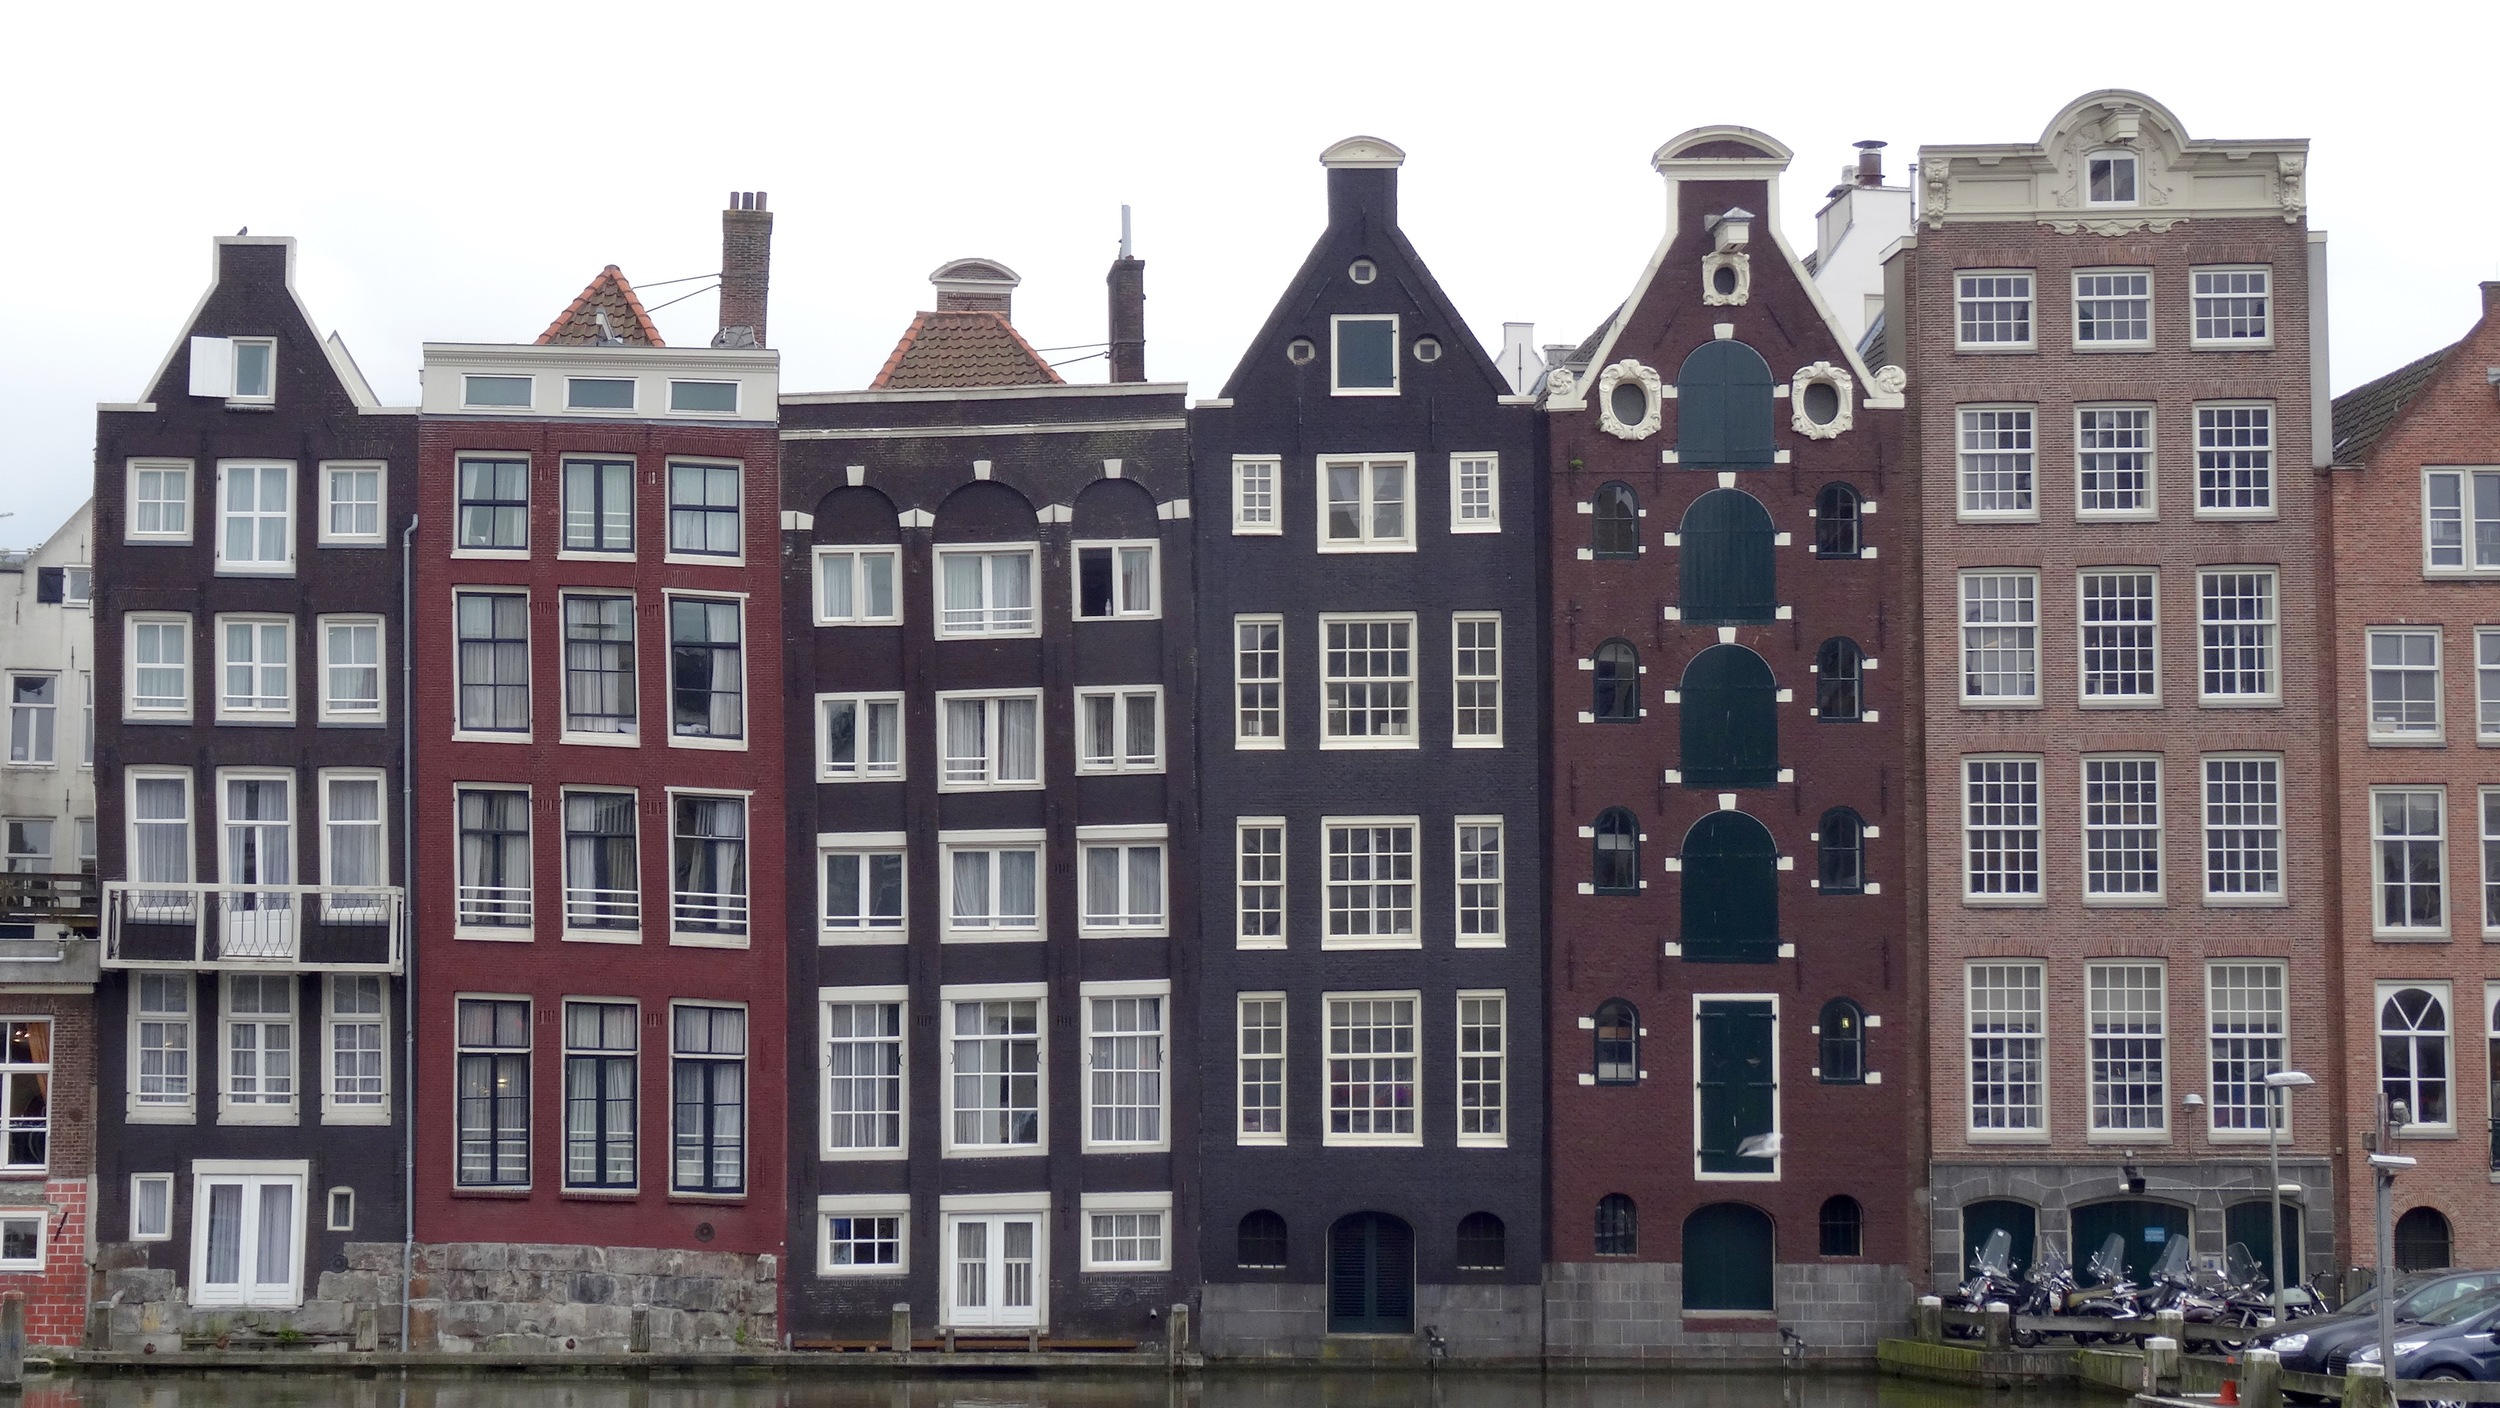 Classic architecture along the canal.